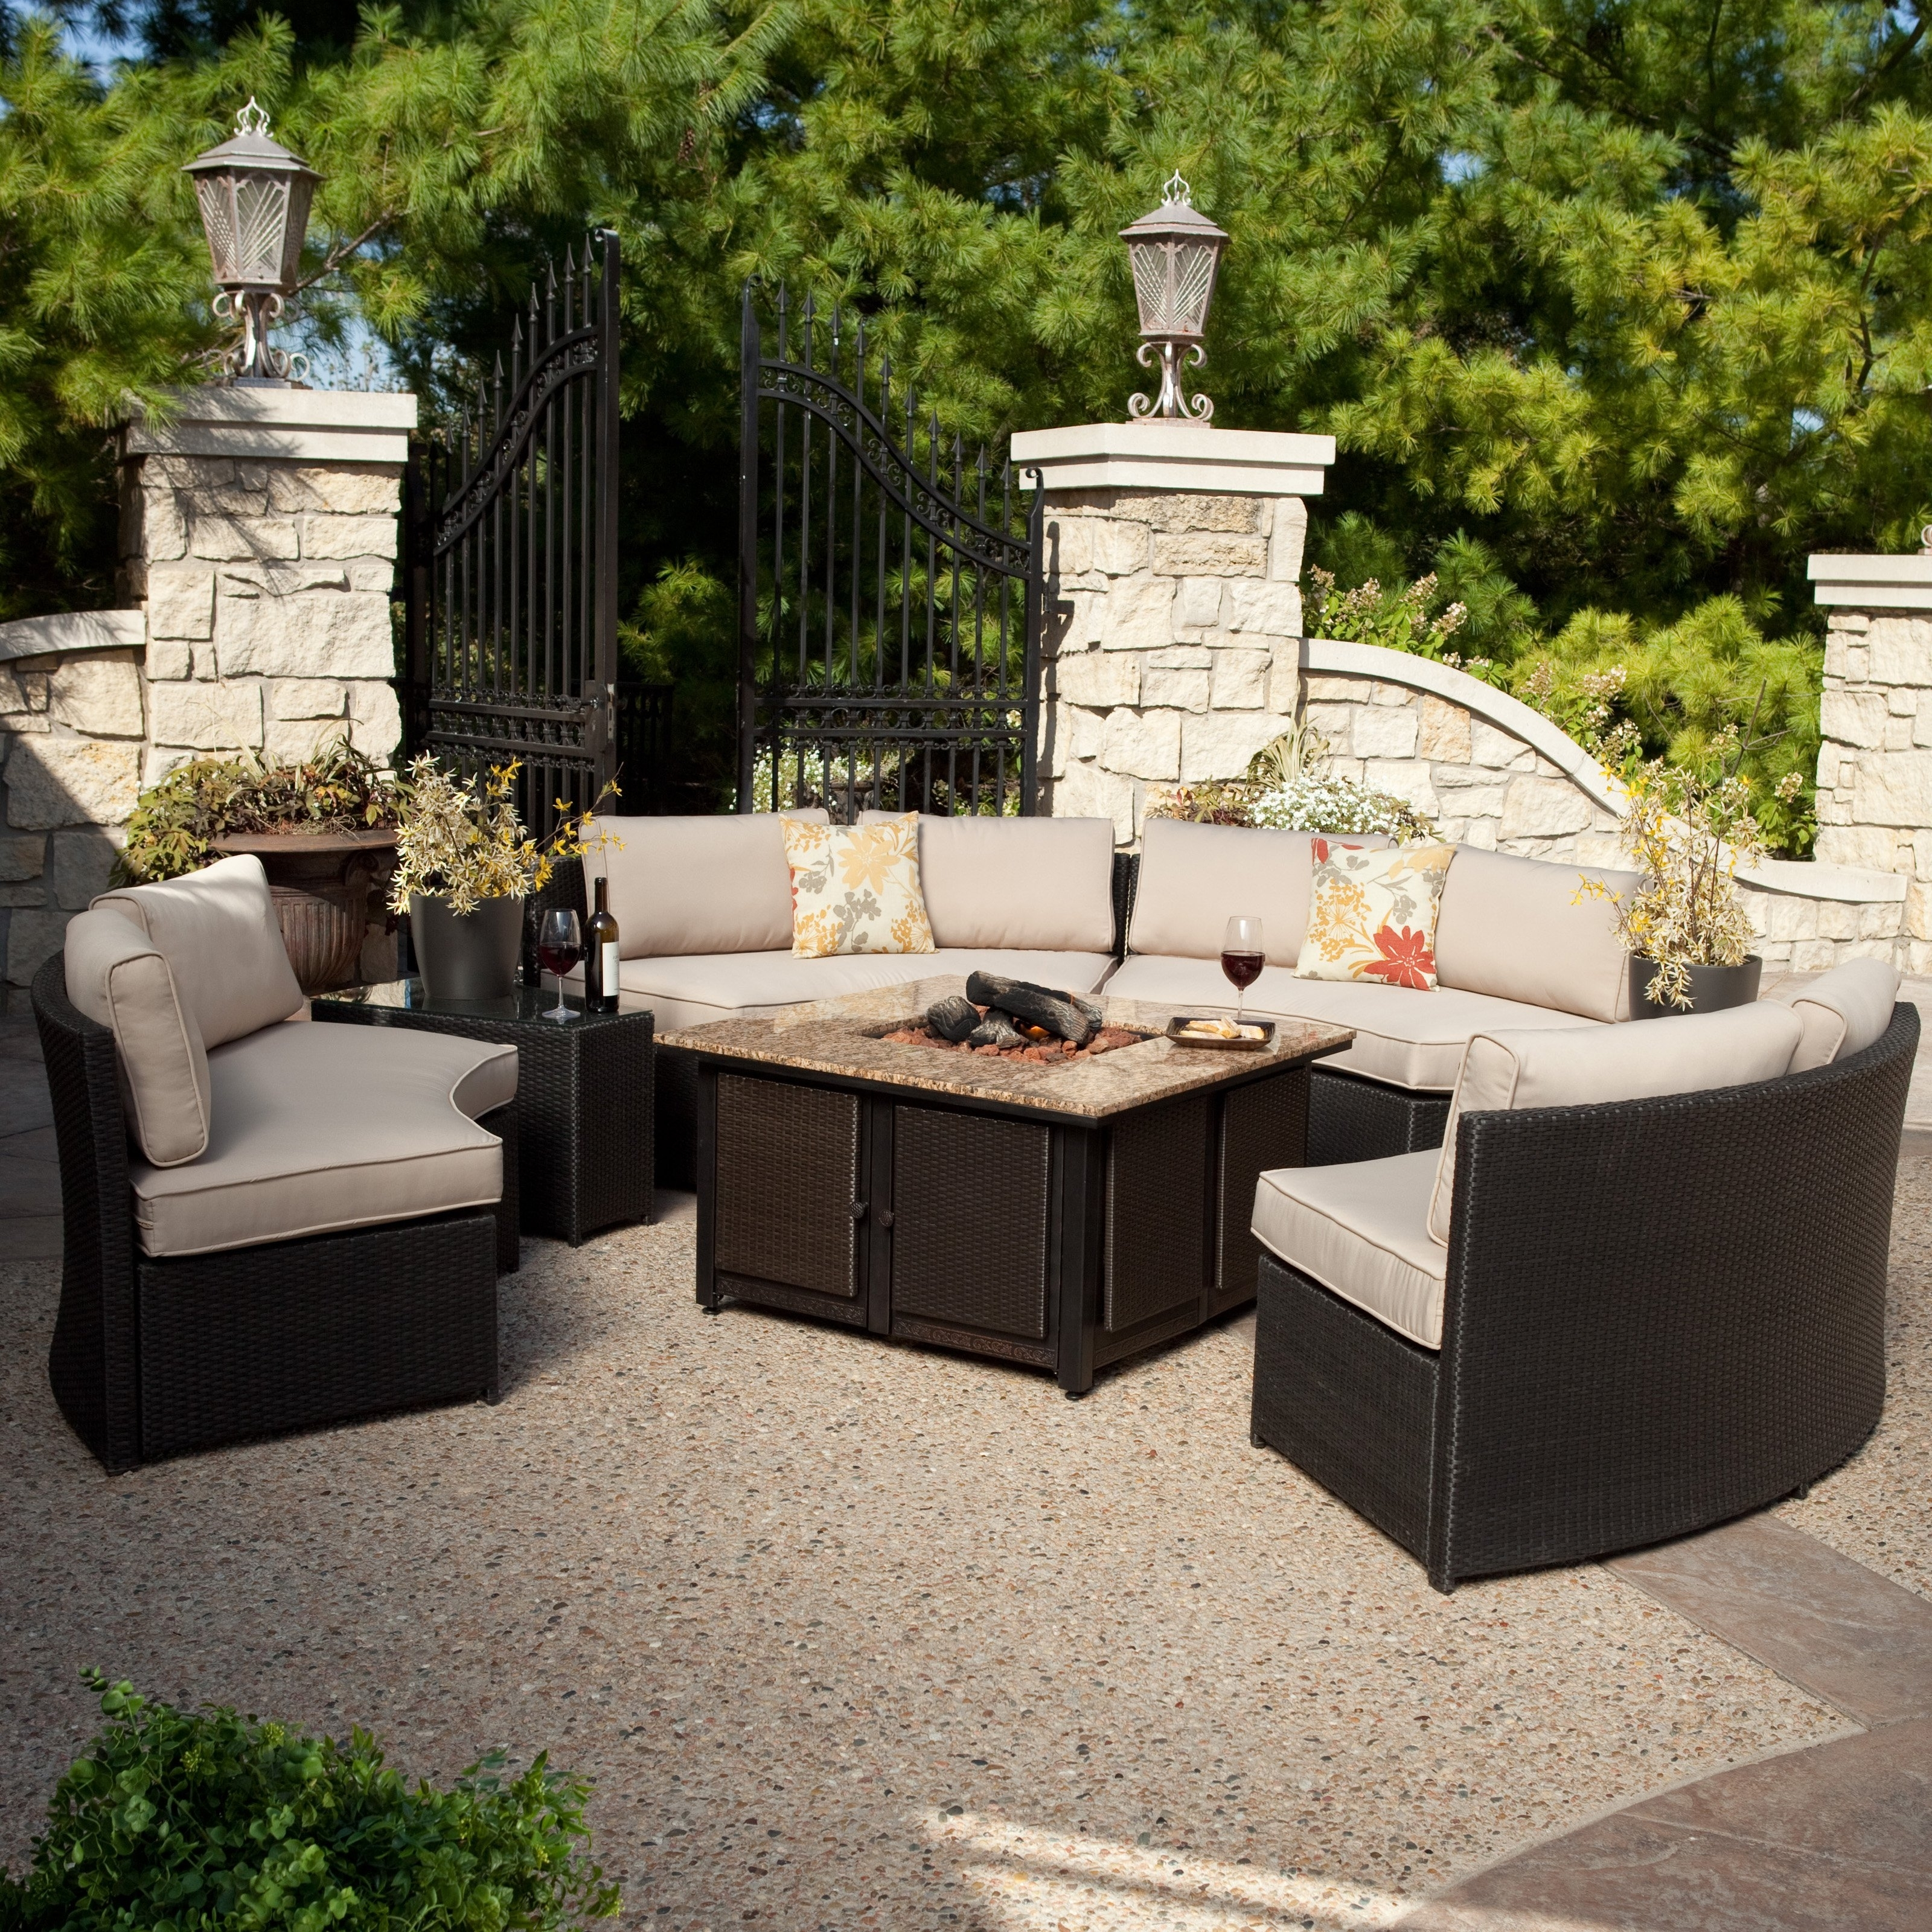 Beautiful Fire Pit Conversation Sets Patio Tall Stone Seating Around Pertaining To Recent Patio Conversation Sets With Fire Pit (View 2 of 20)